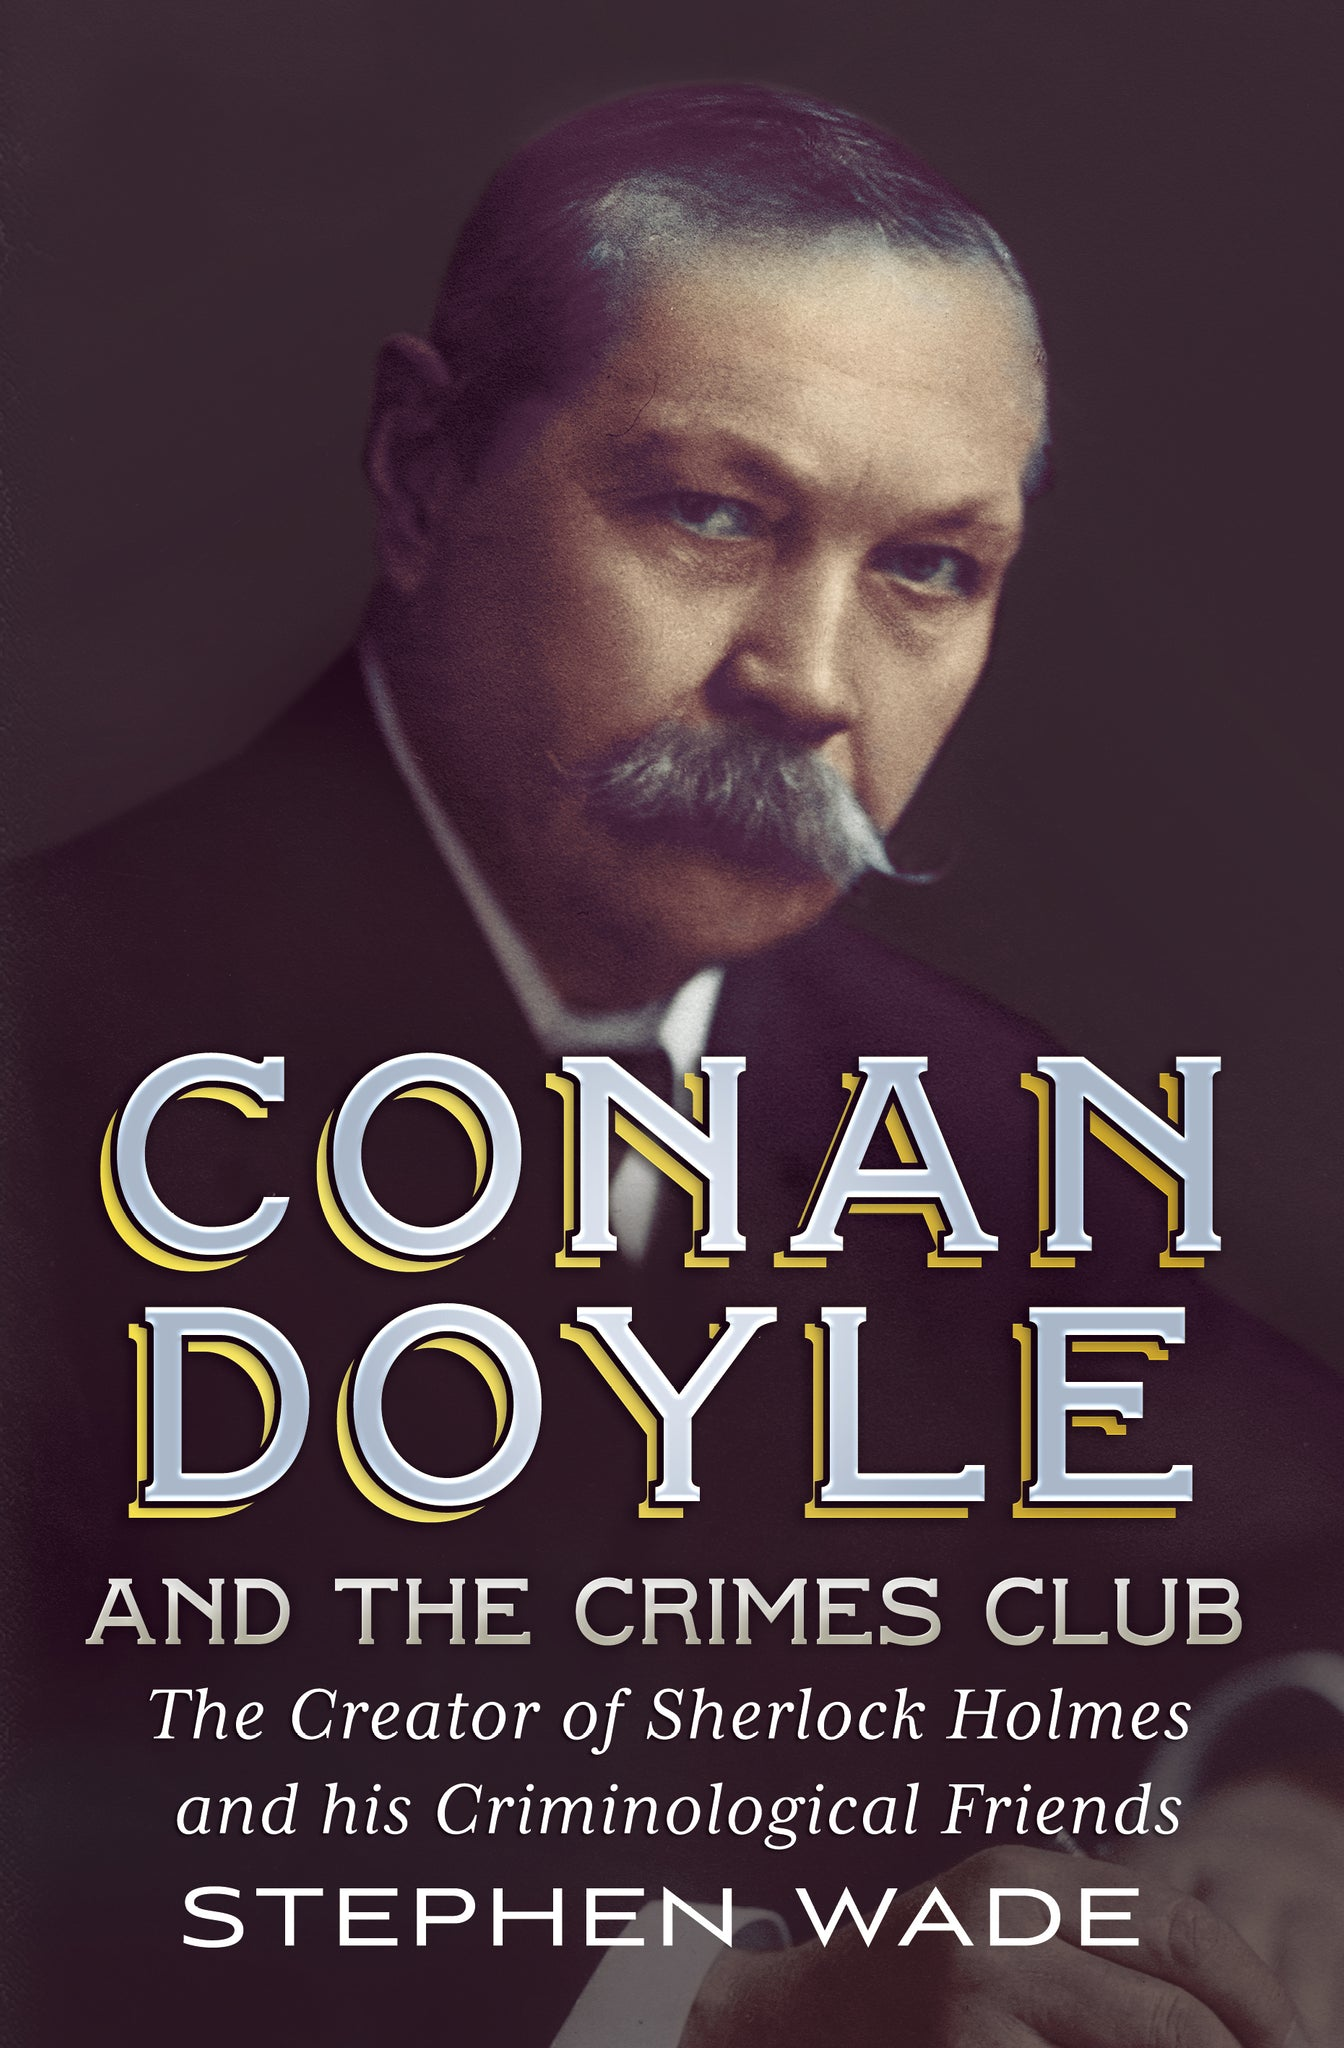 Conan Doyle and the Crimes Club - available from Fonthill Media